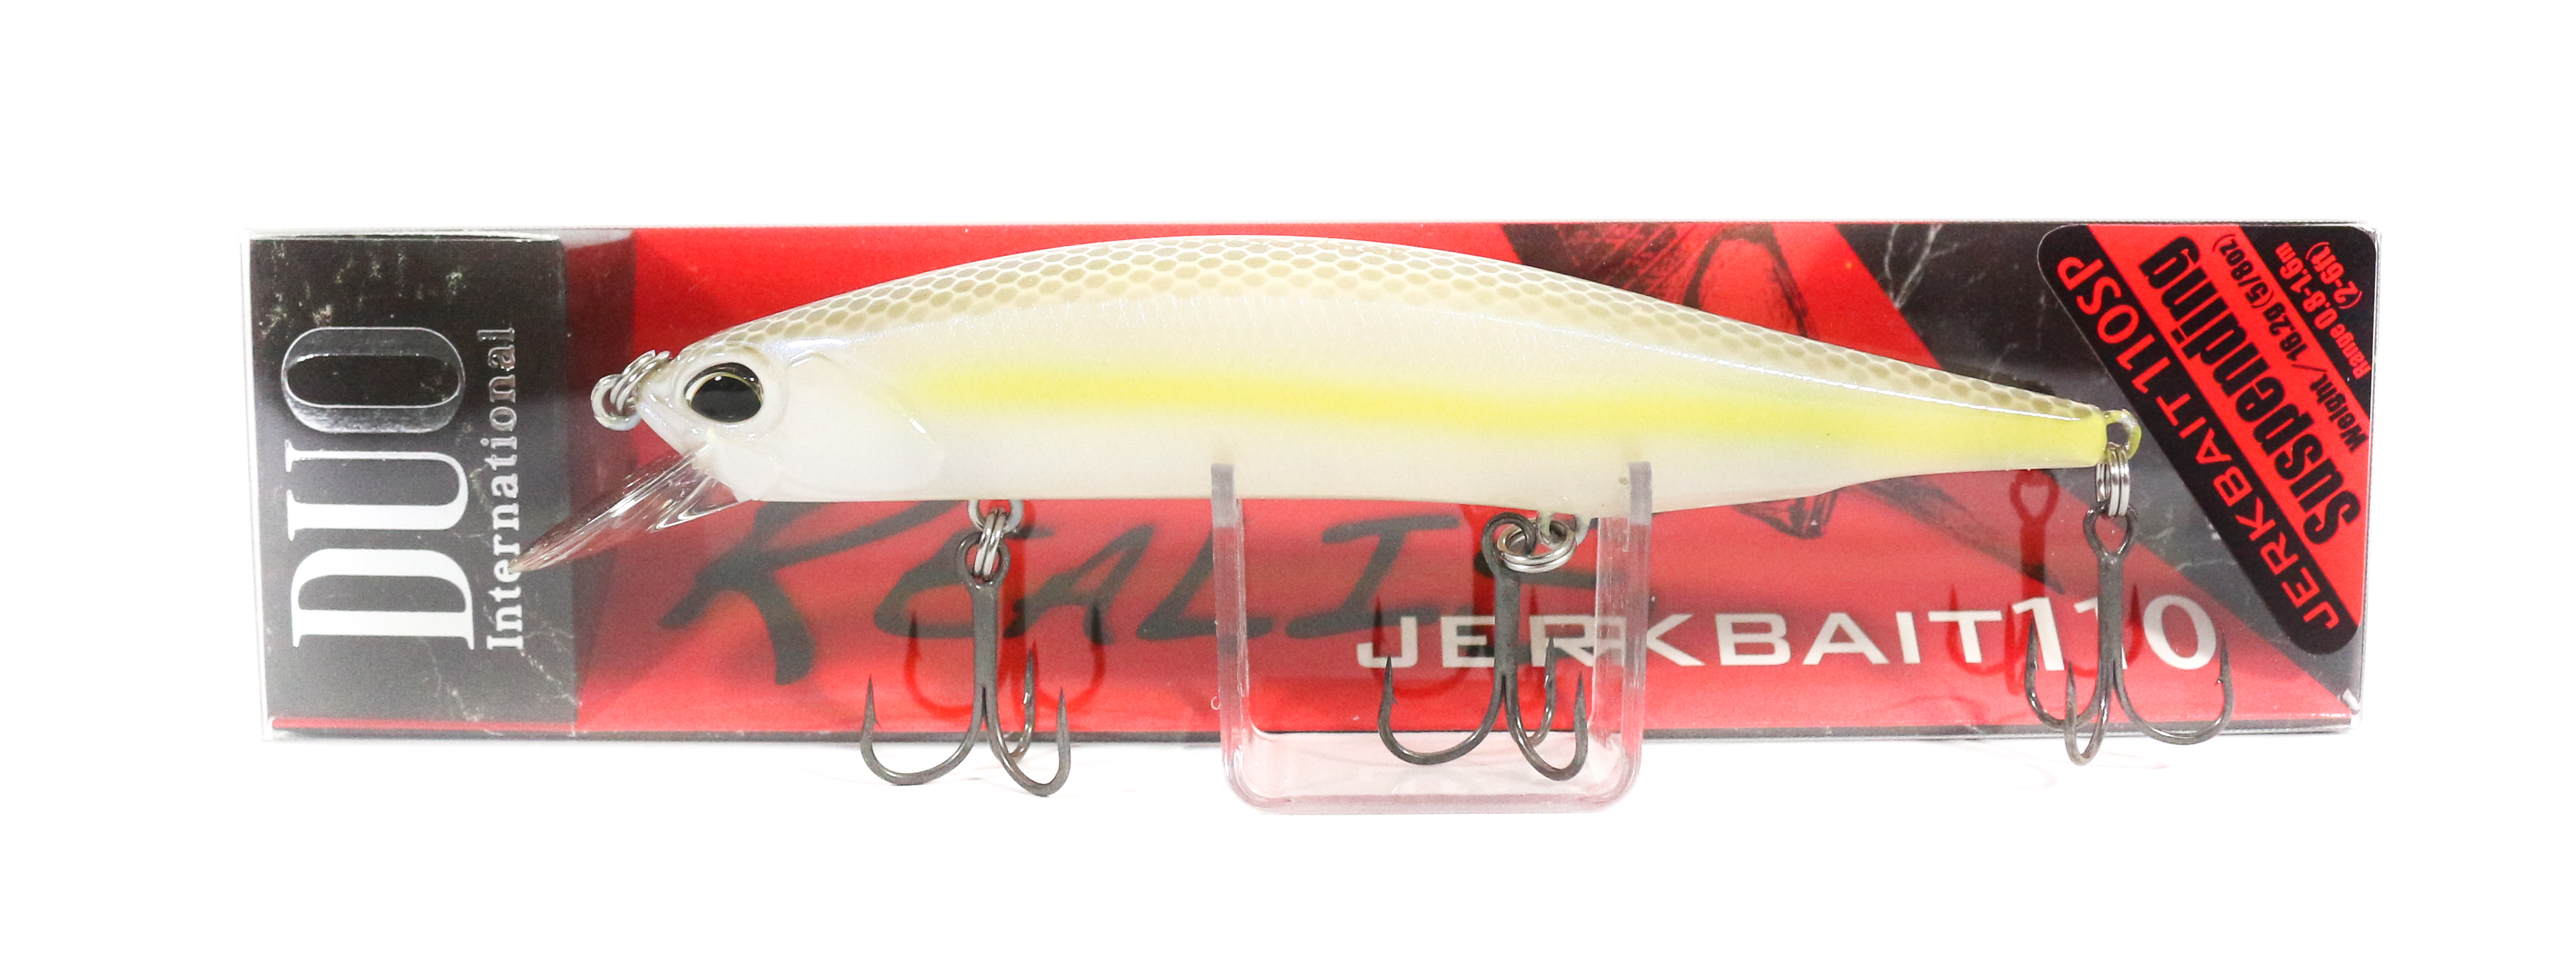 Duo Realis Jerkbait 110SP Suspend Lure ACC3162 (6473)